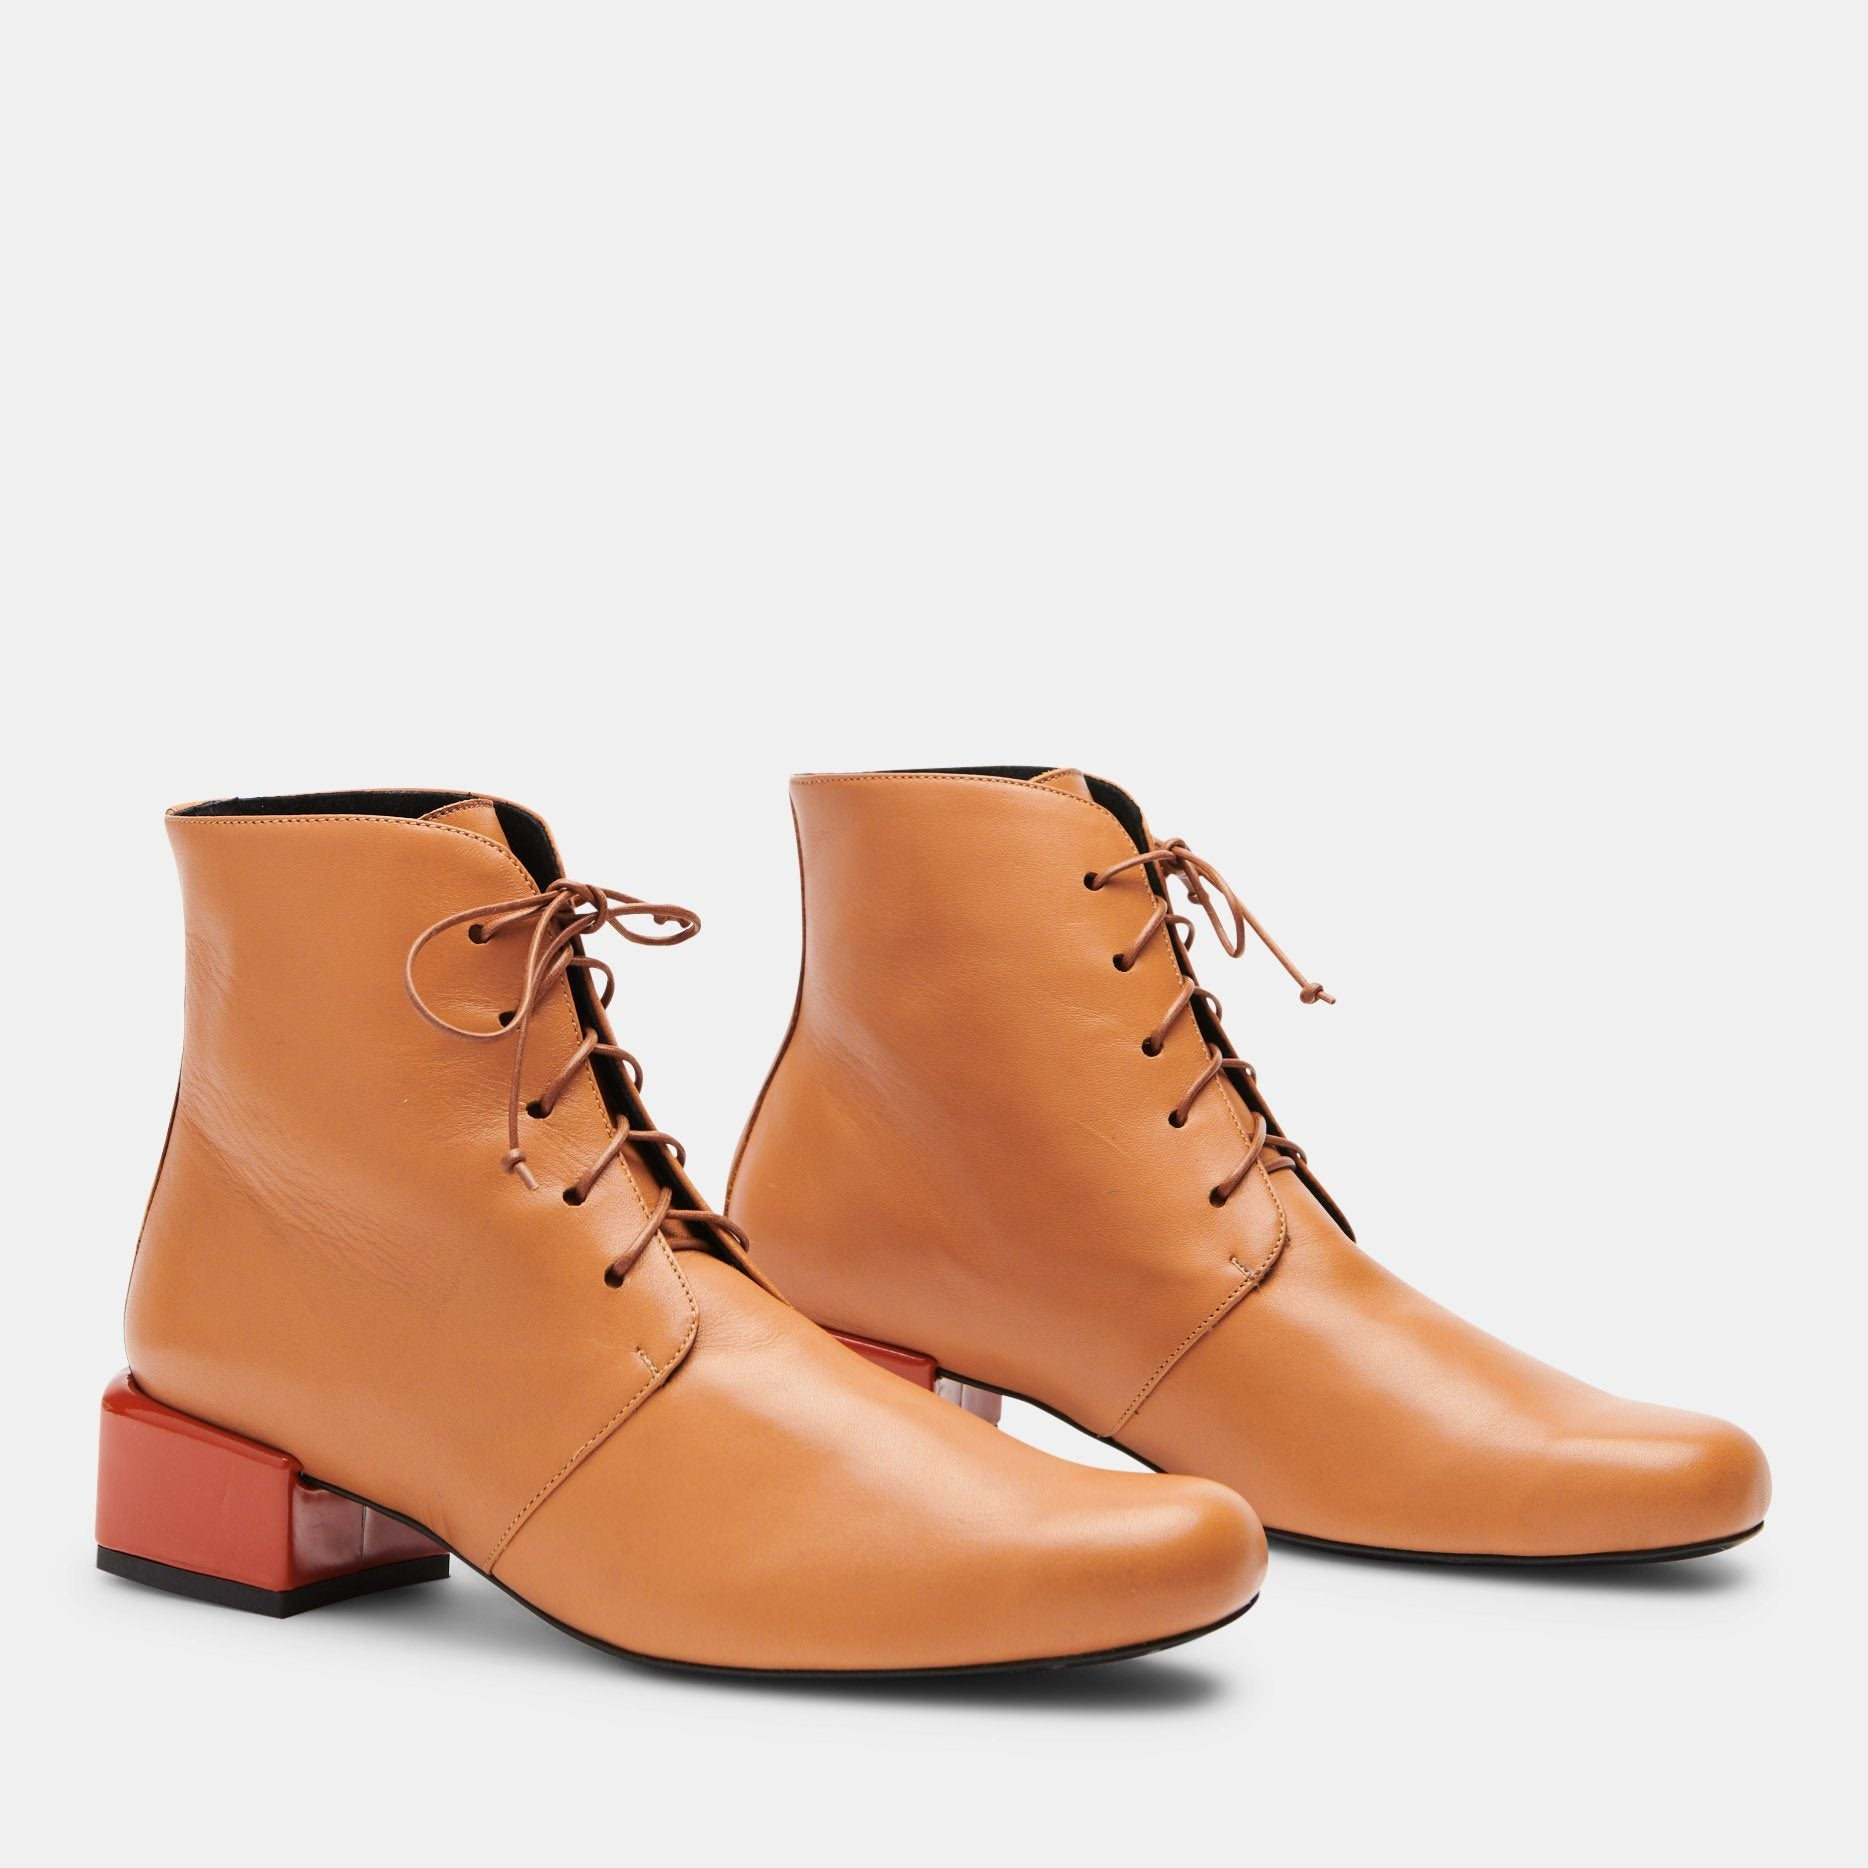 BOWIE DESERT LACE-UP